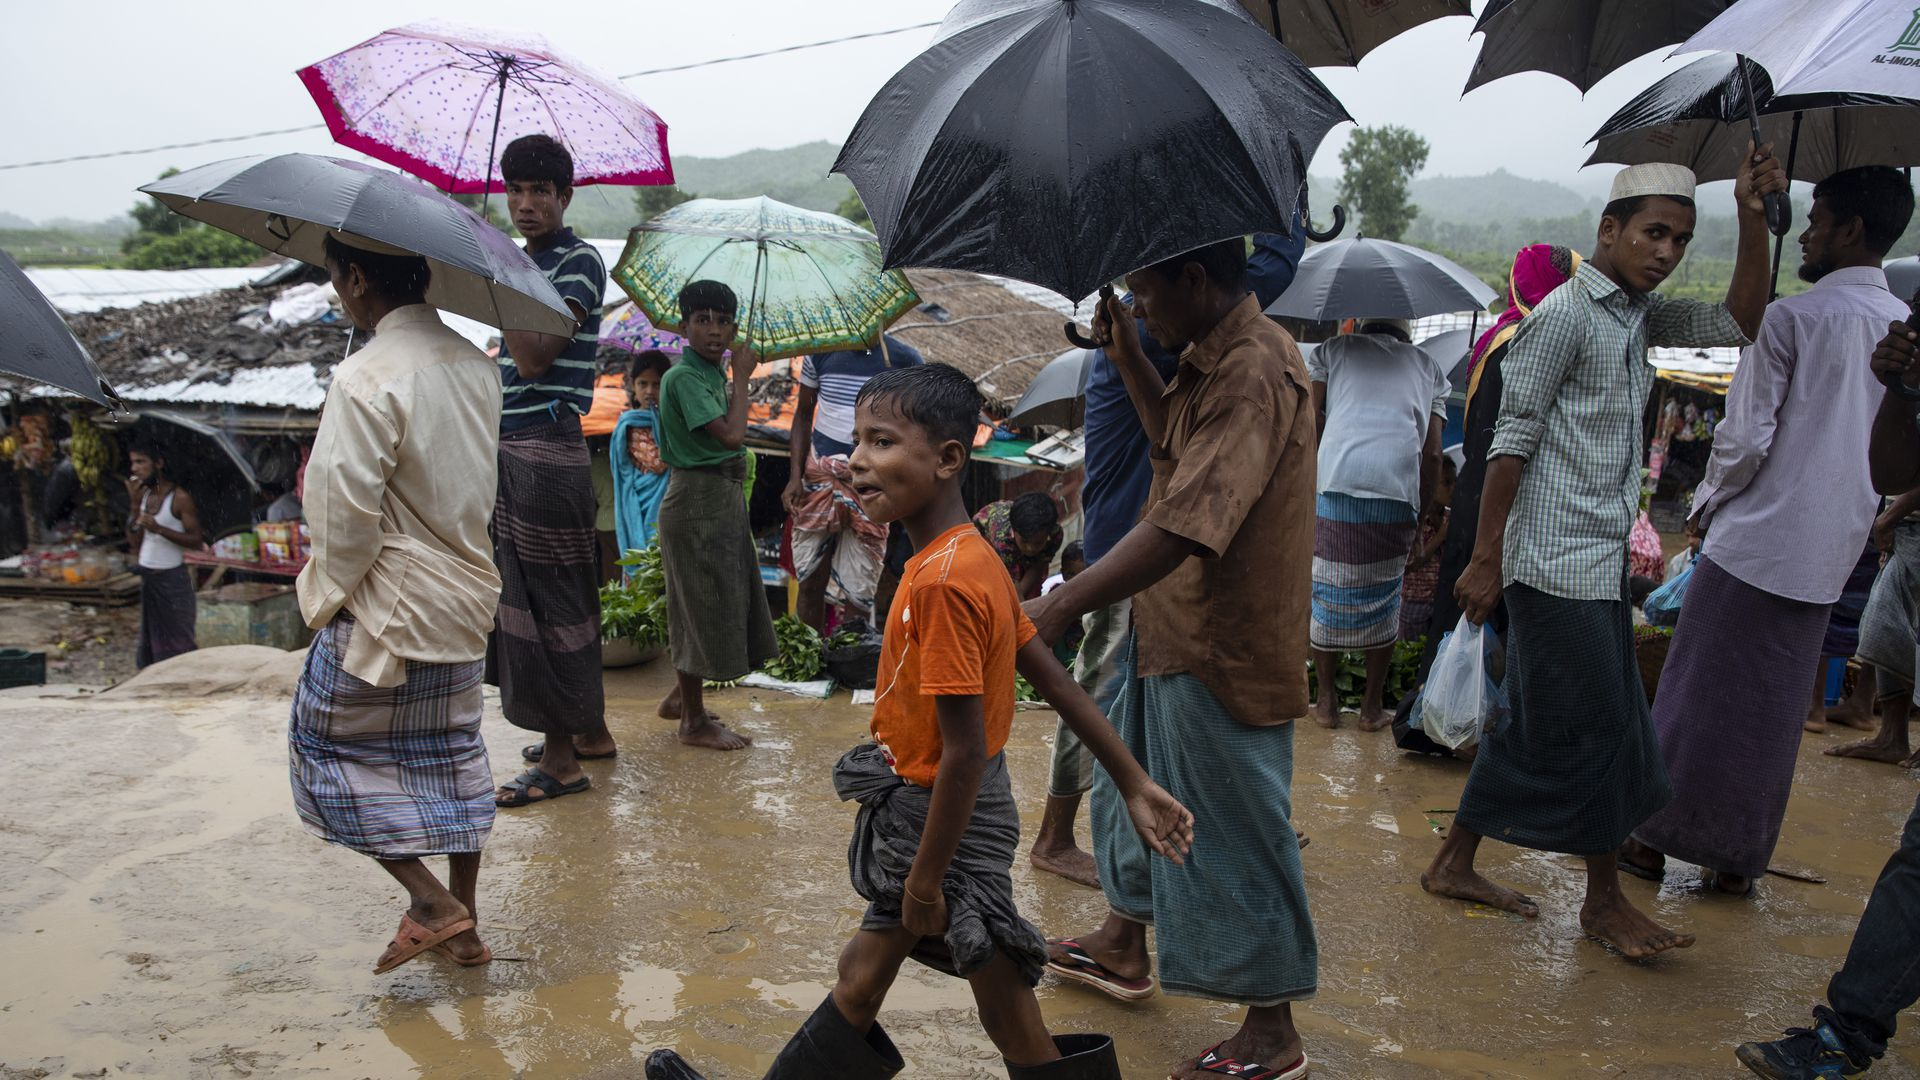 Monsoon rains hit the refugee camps as Rohingya walk through a local market August 28, 2018 in Unchiprang refugee camp, Cox's Bazar, Bangladesh.